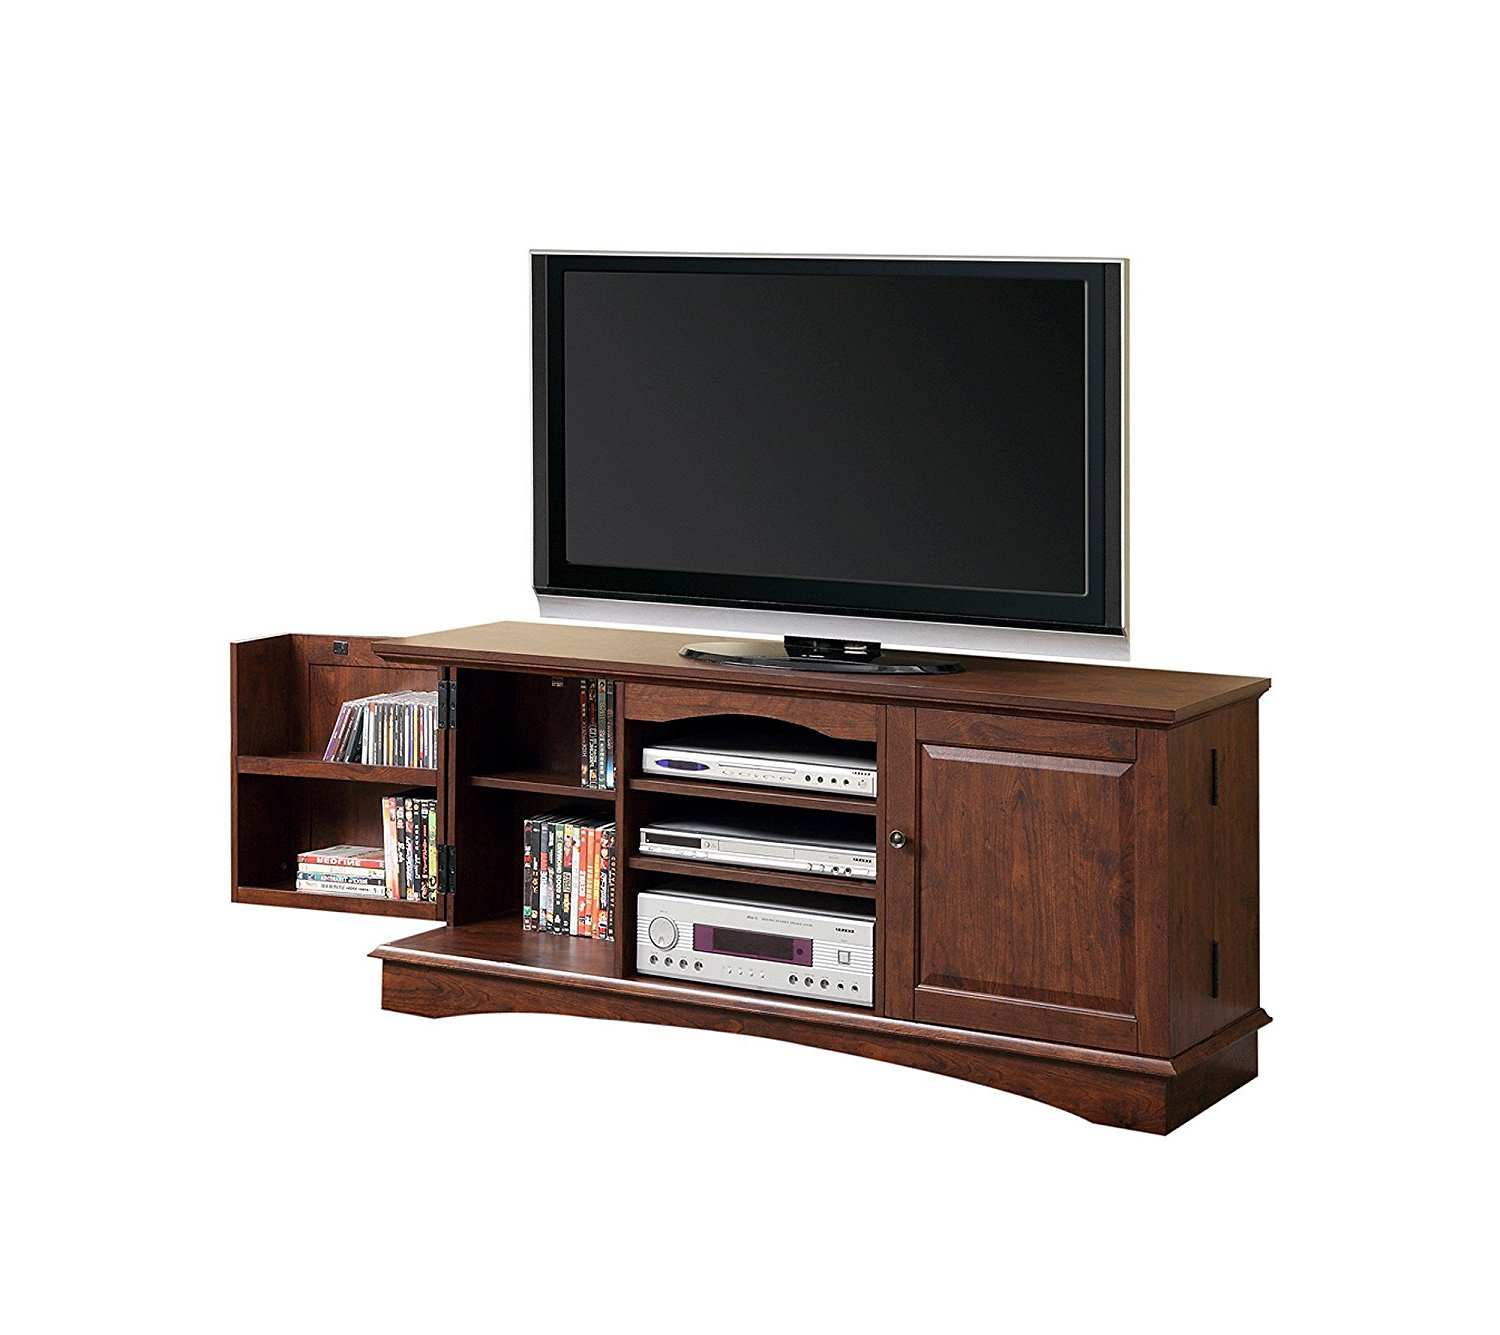 Cheap Loft Tv Aerials, Find Loft Tv Aerials Deals On Line At Alibaba Throughout Trendy Home Loft Concept Tv Stands (View 6 of 20)